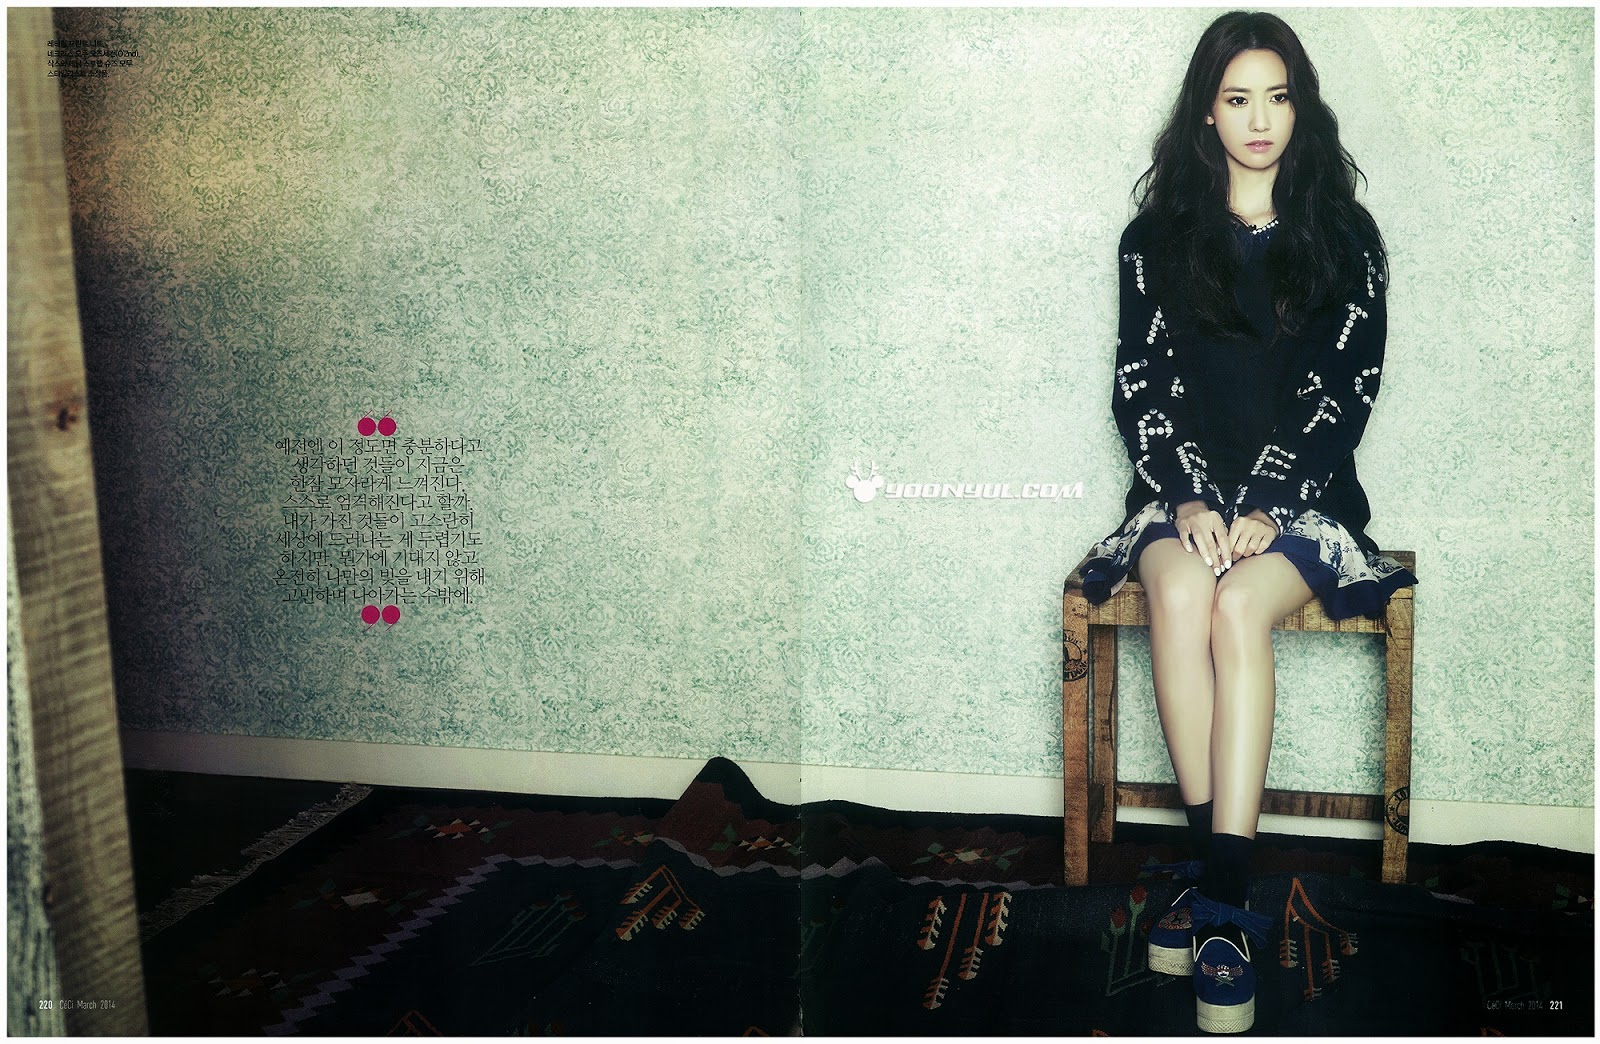 hd yoona ceci march 2014 wallpaper hd 1600x1044